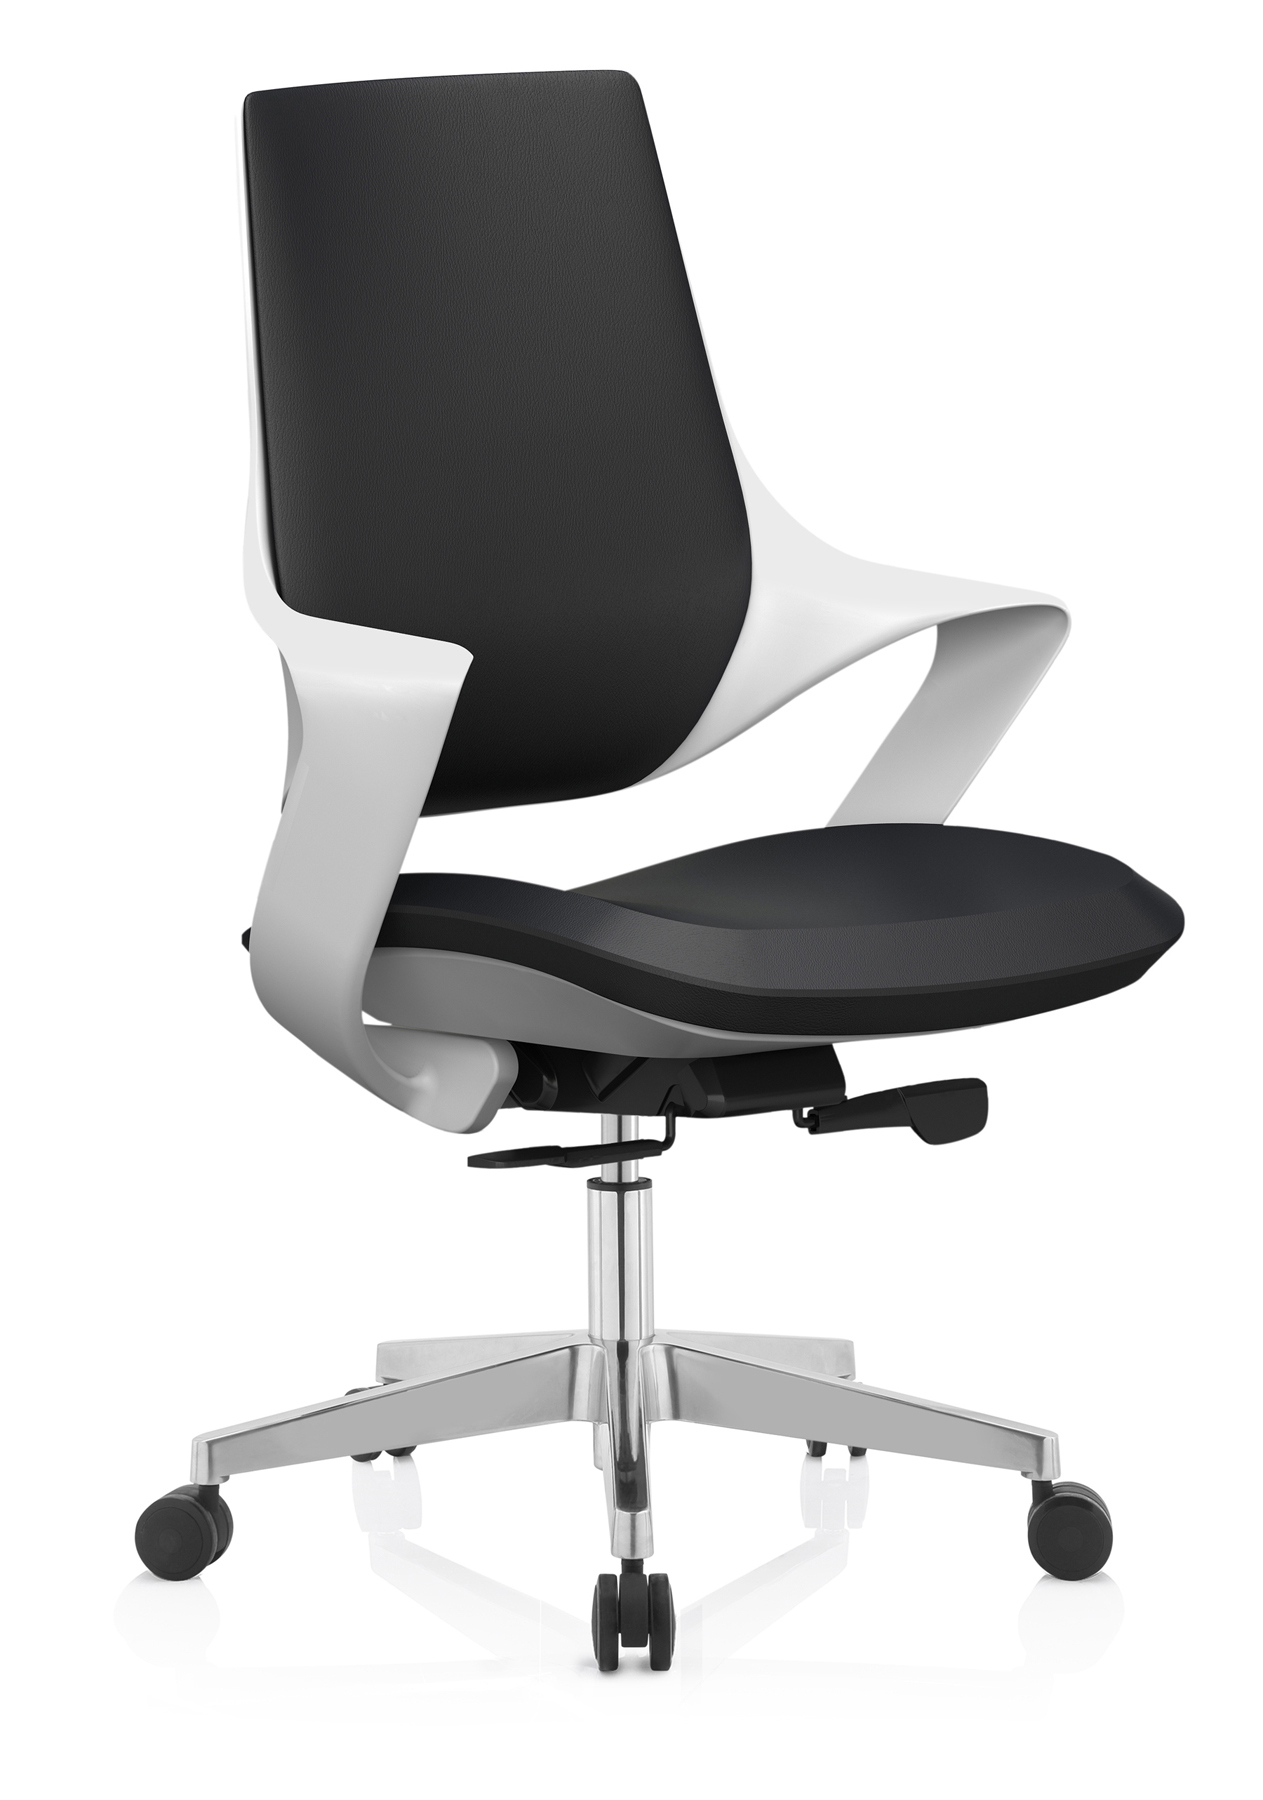 Meeting / Collaborative Chairs